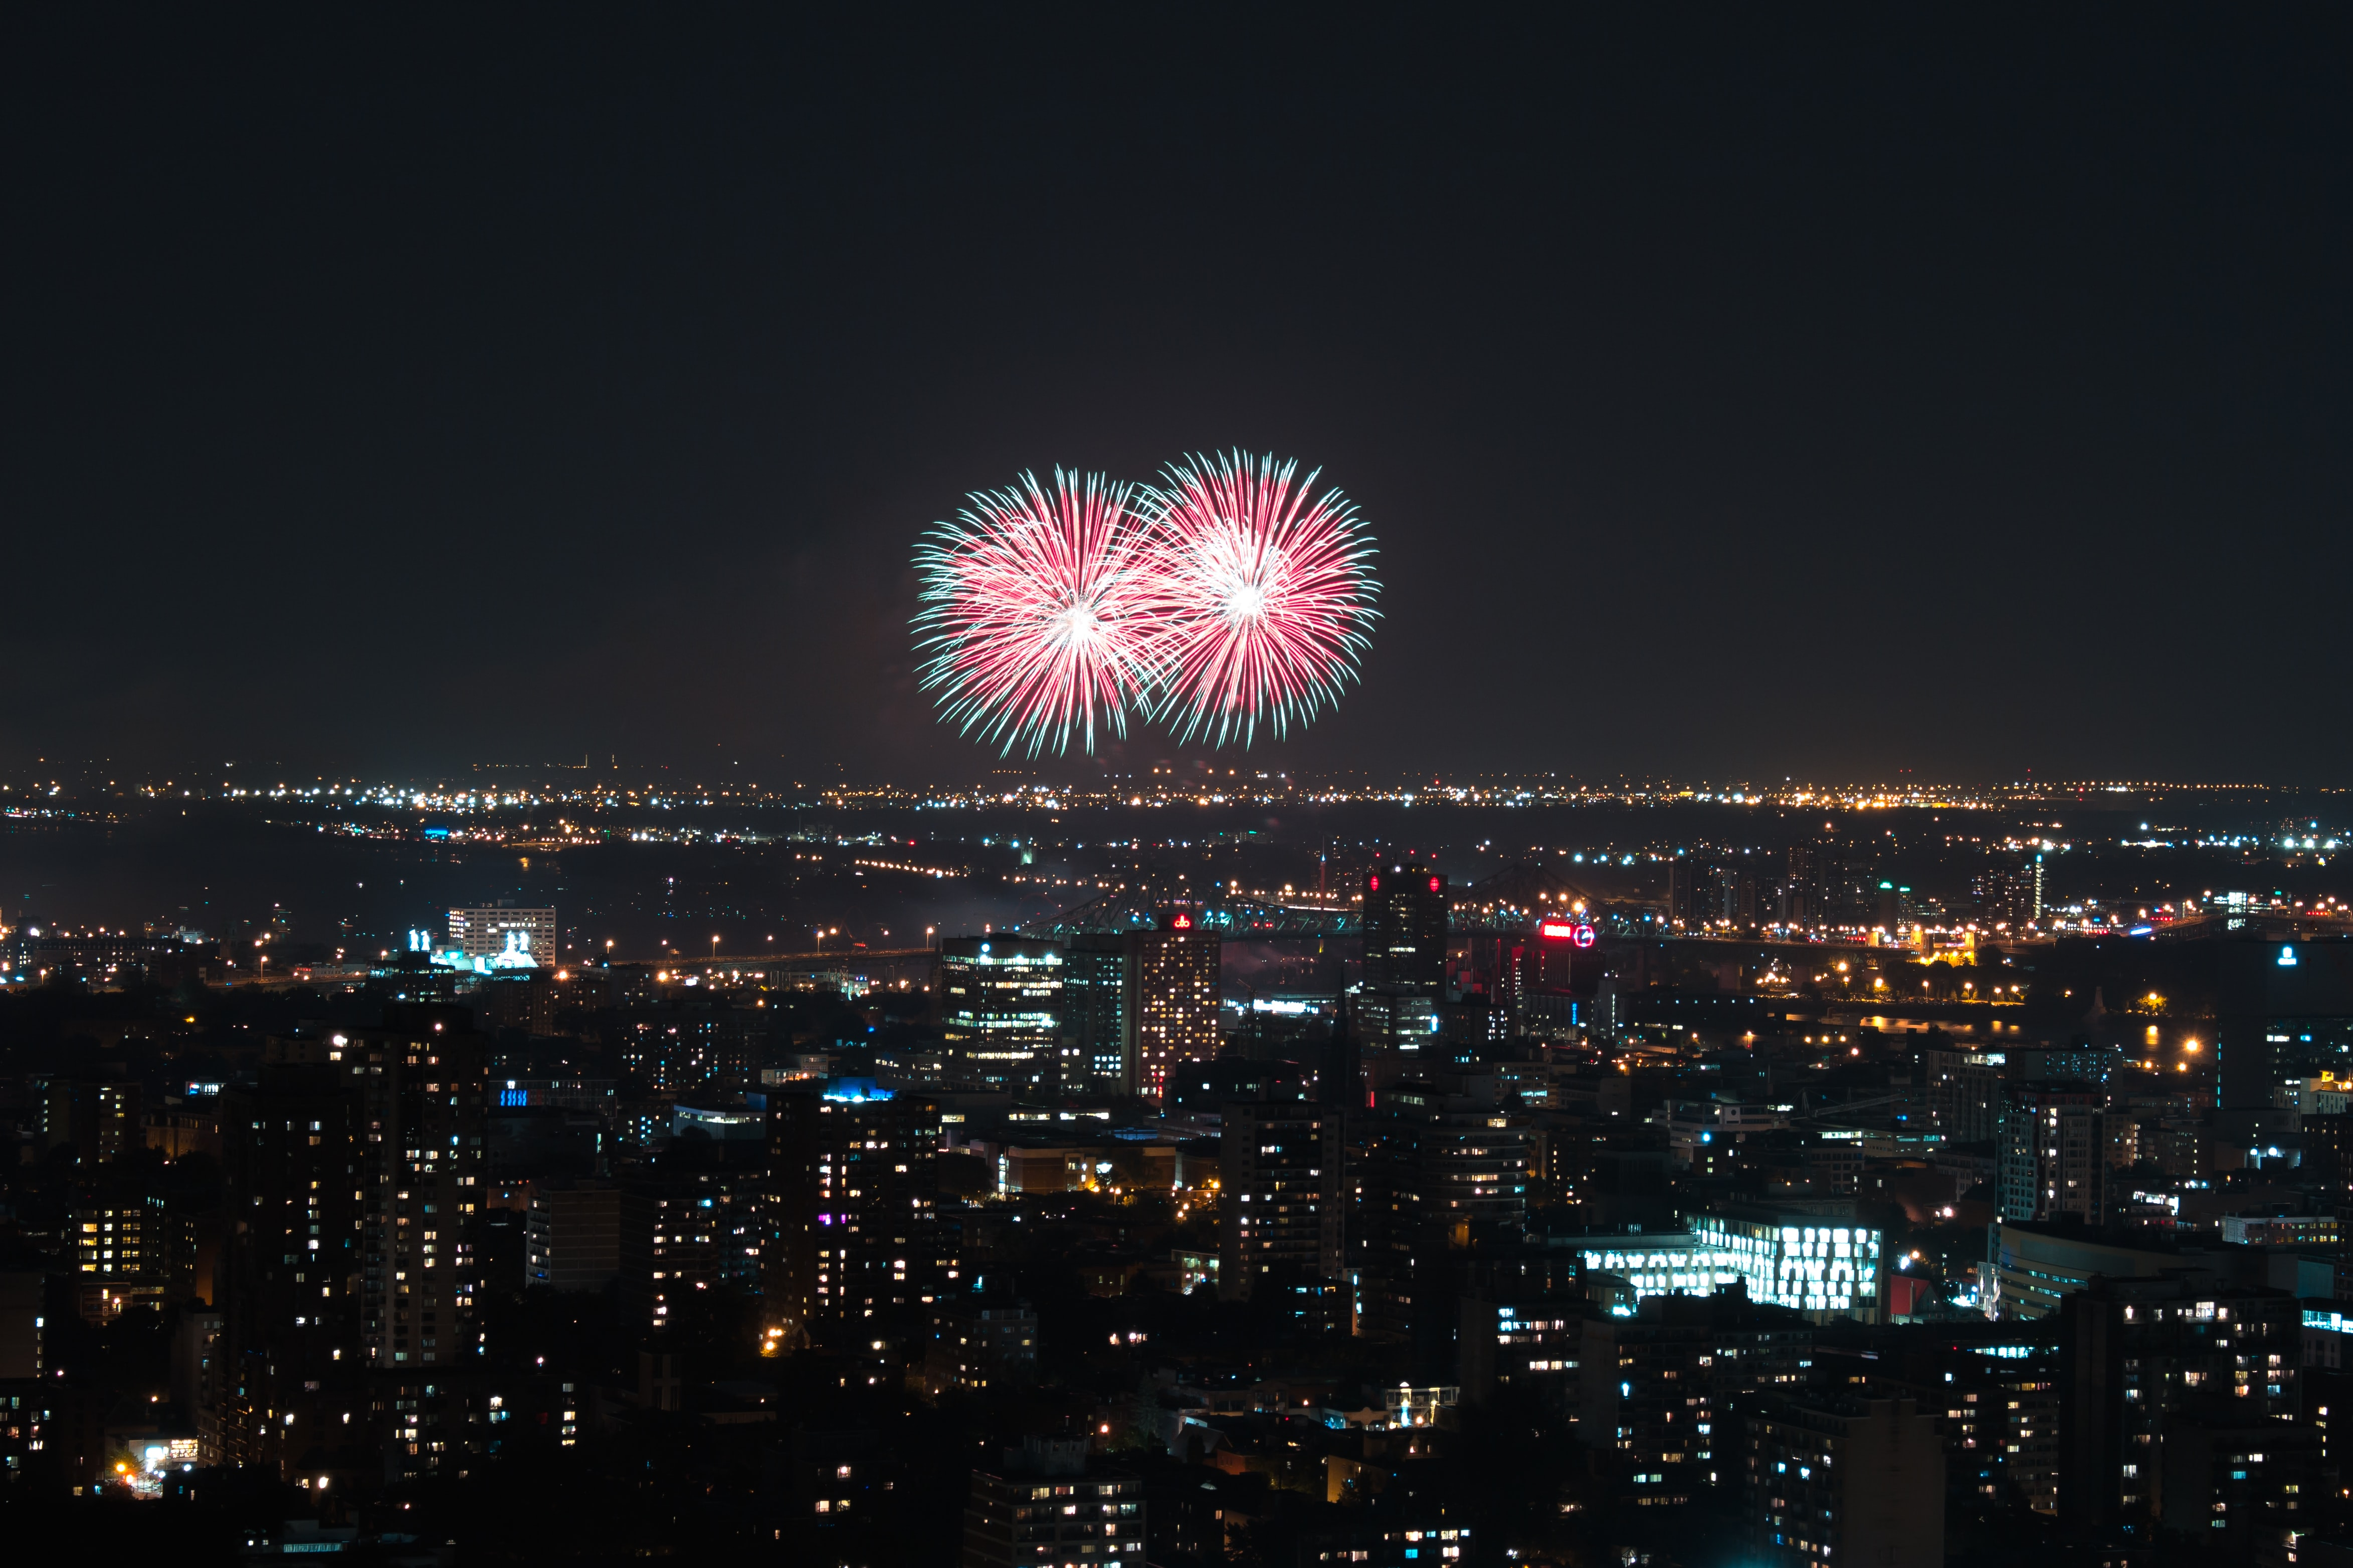 city building under fireworks during nighttime